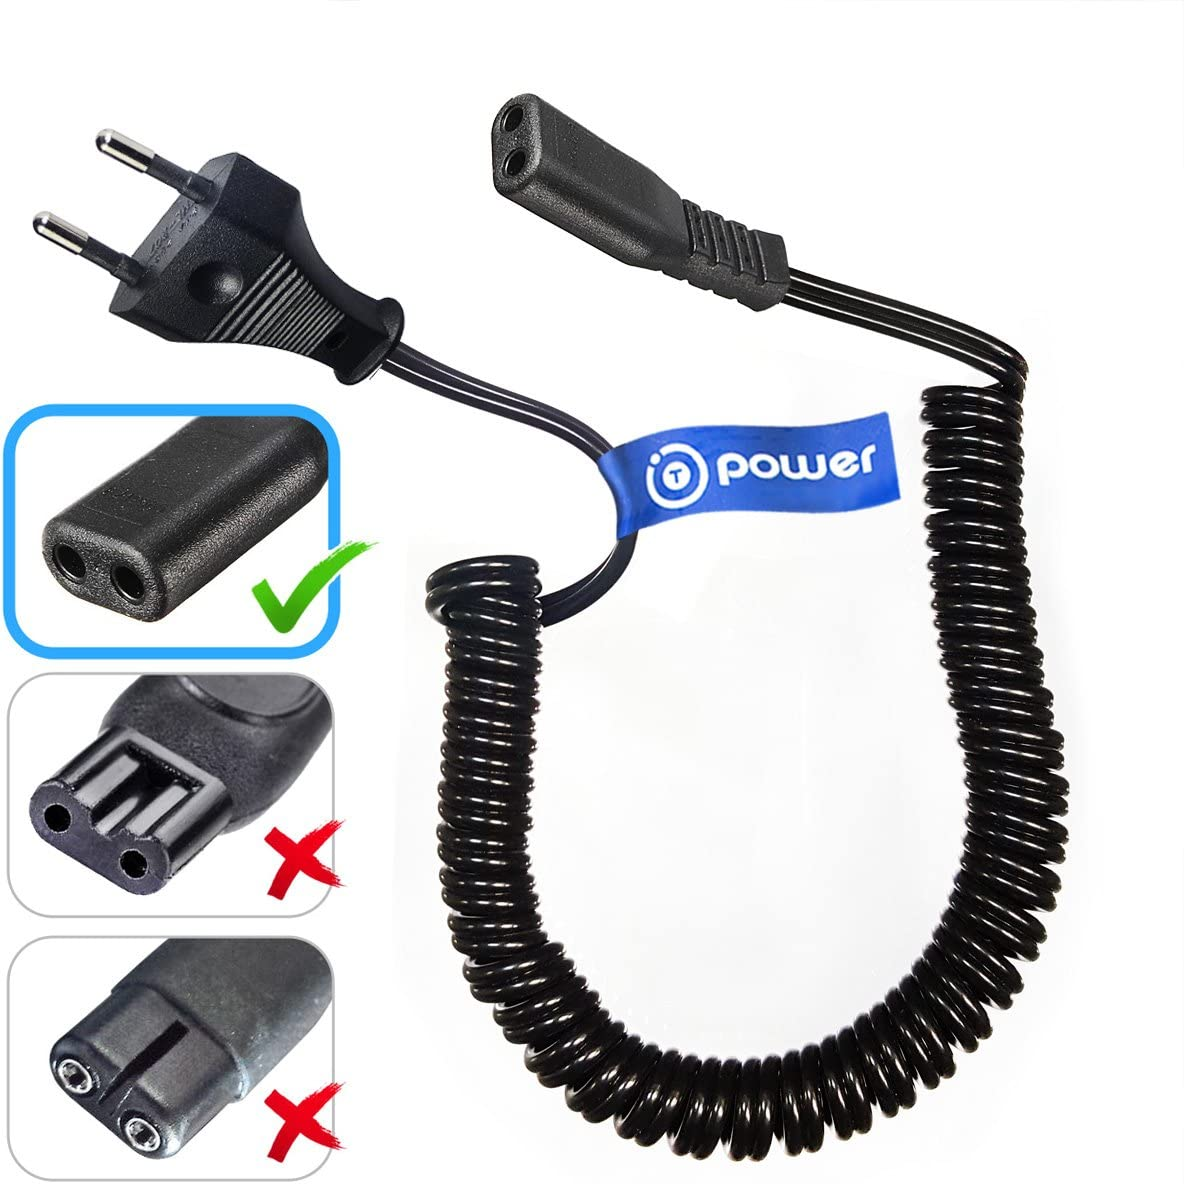 T POWER - Cable universal para afeitadoras Philips Norelco ...